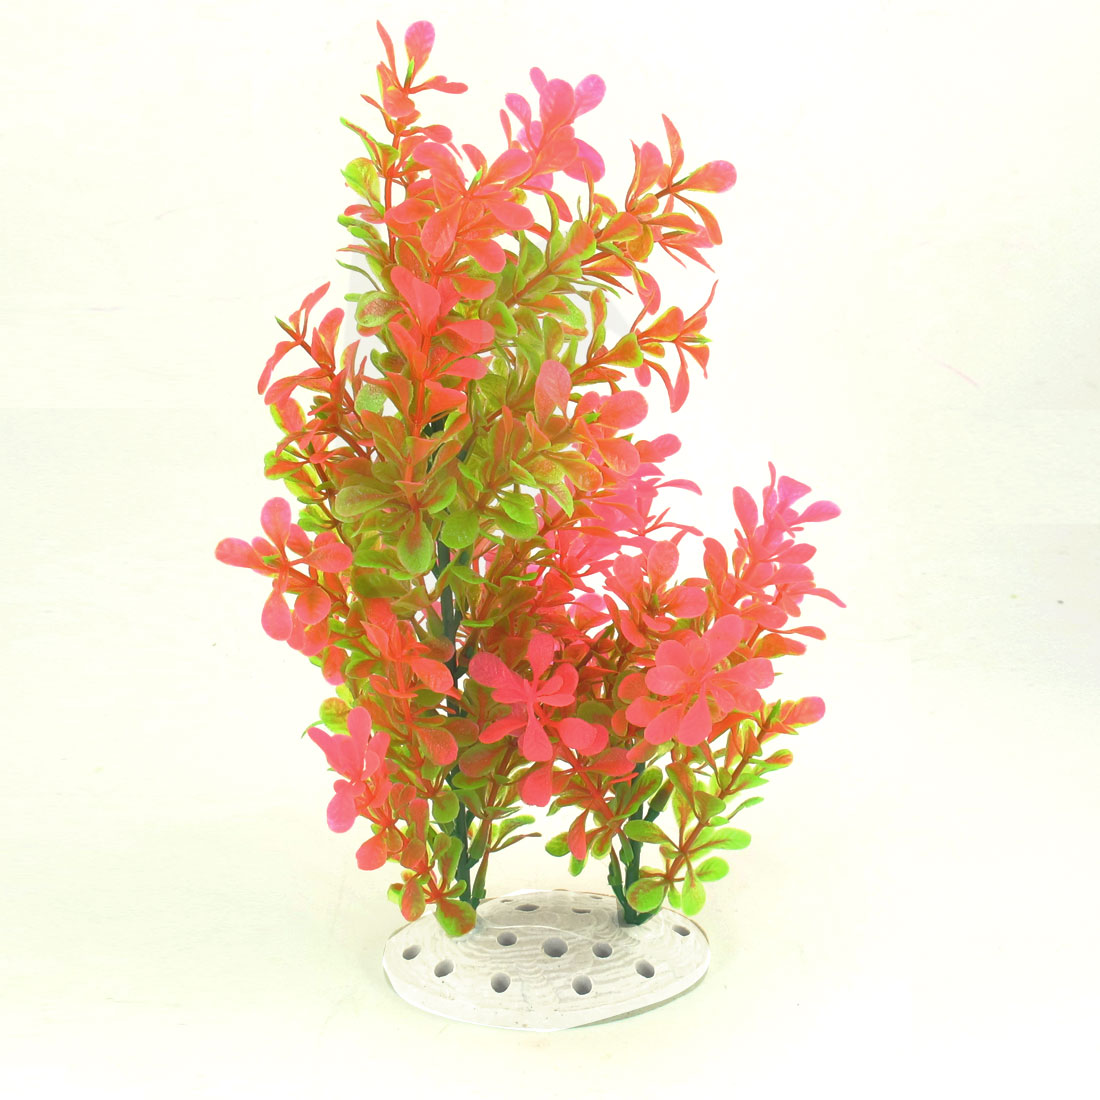 17cm Width Aquarium Aquascaping Hot Pink Green Artificial Aquatic Grass Ornament